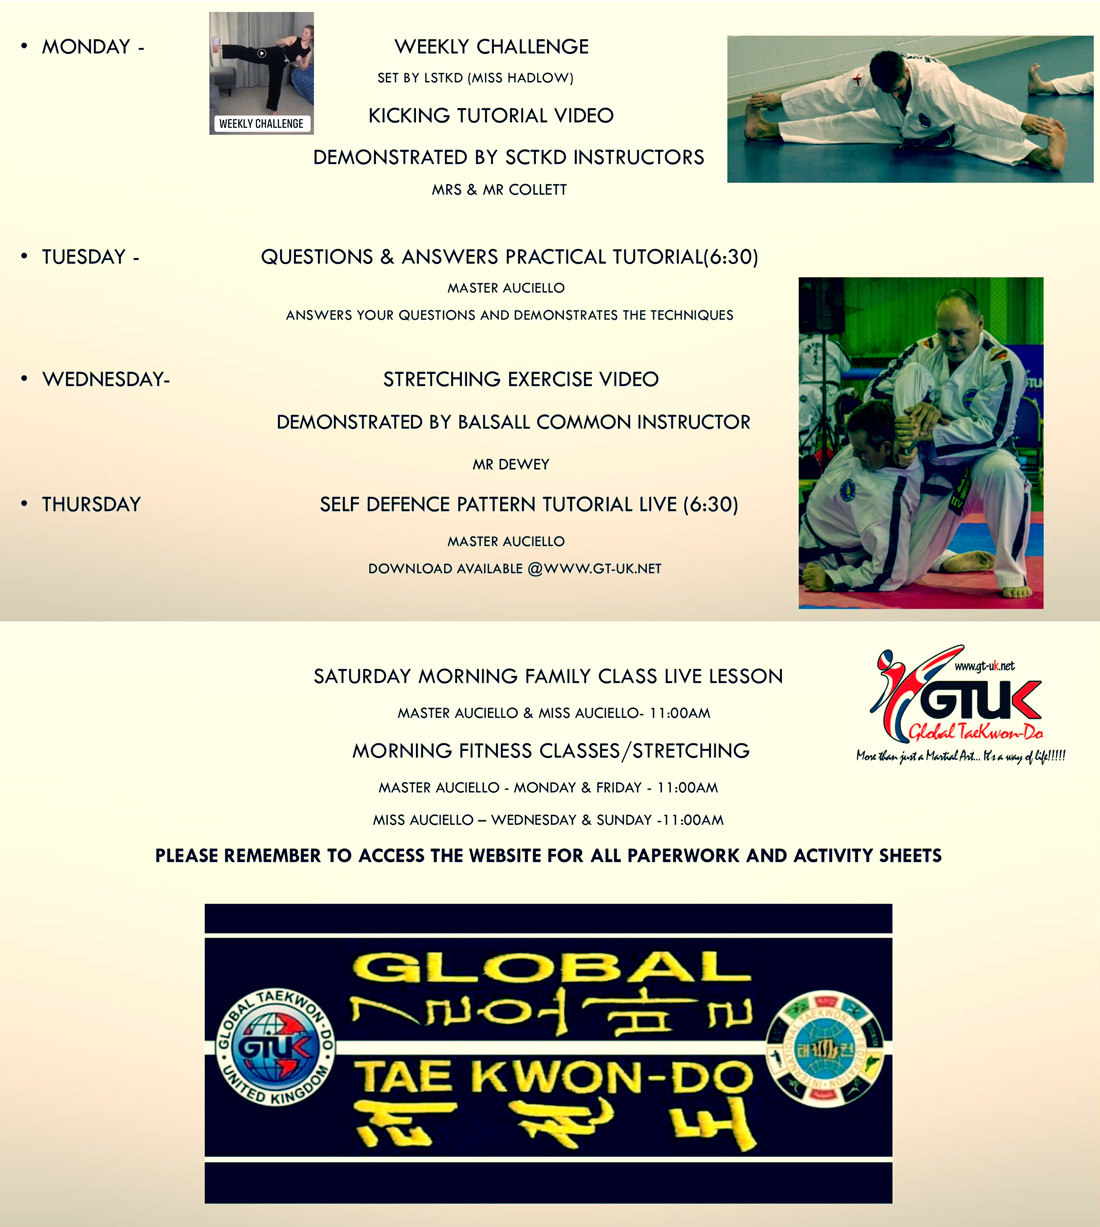 gtuk distance training schedule